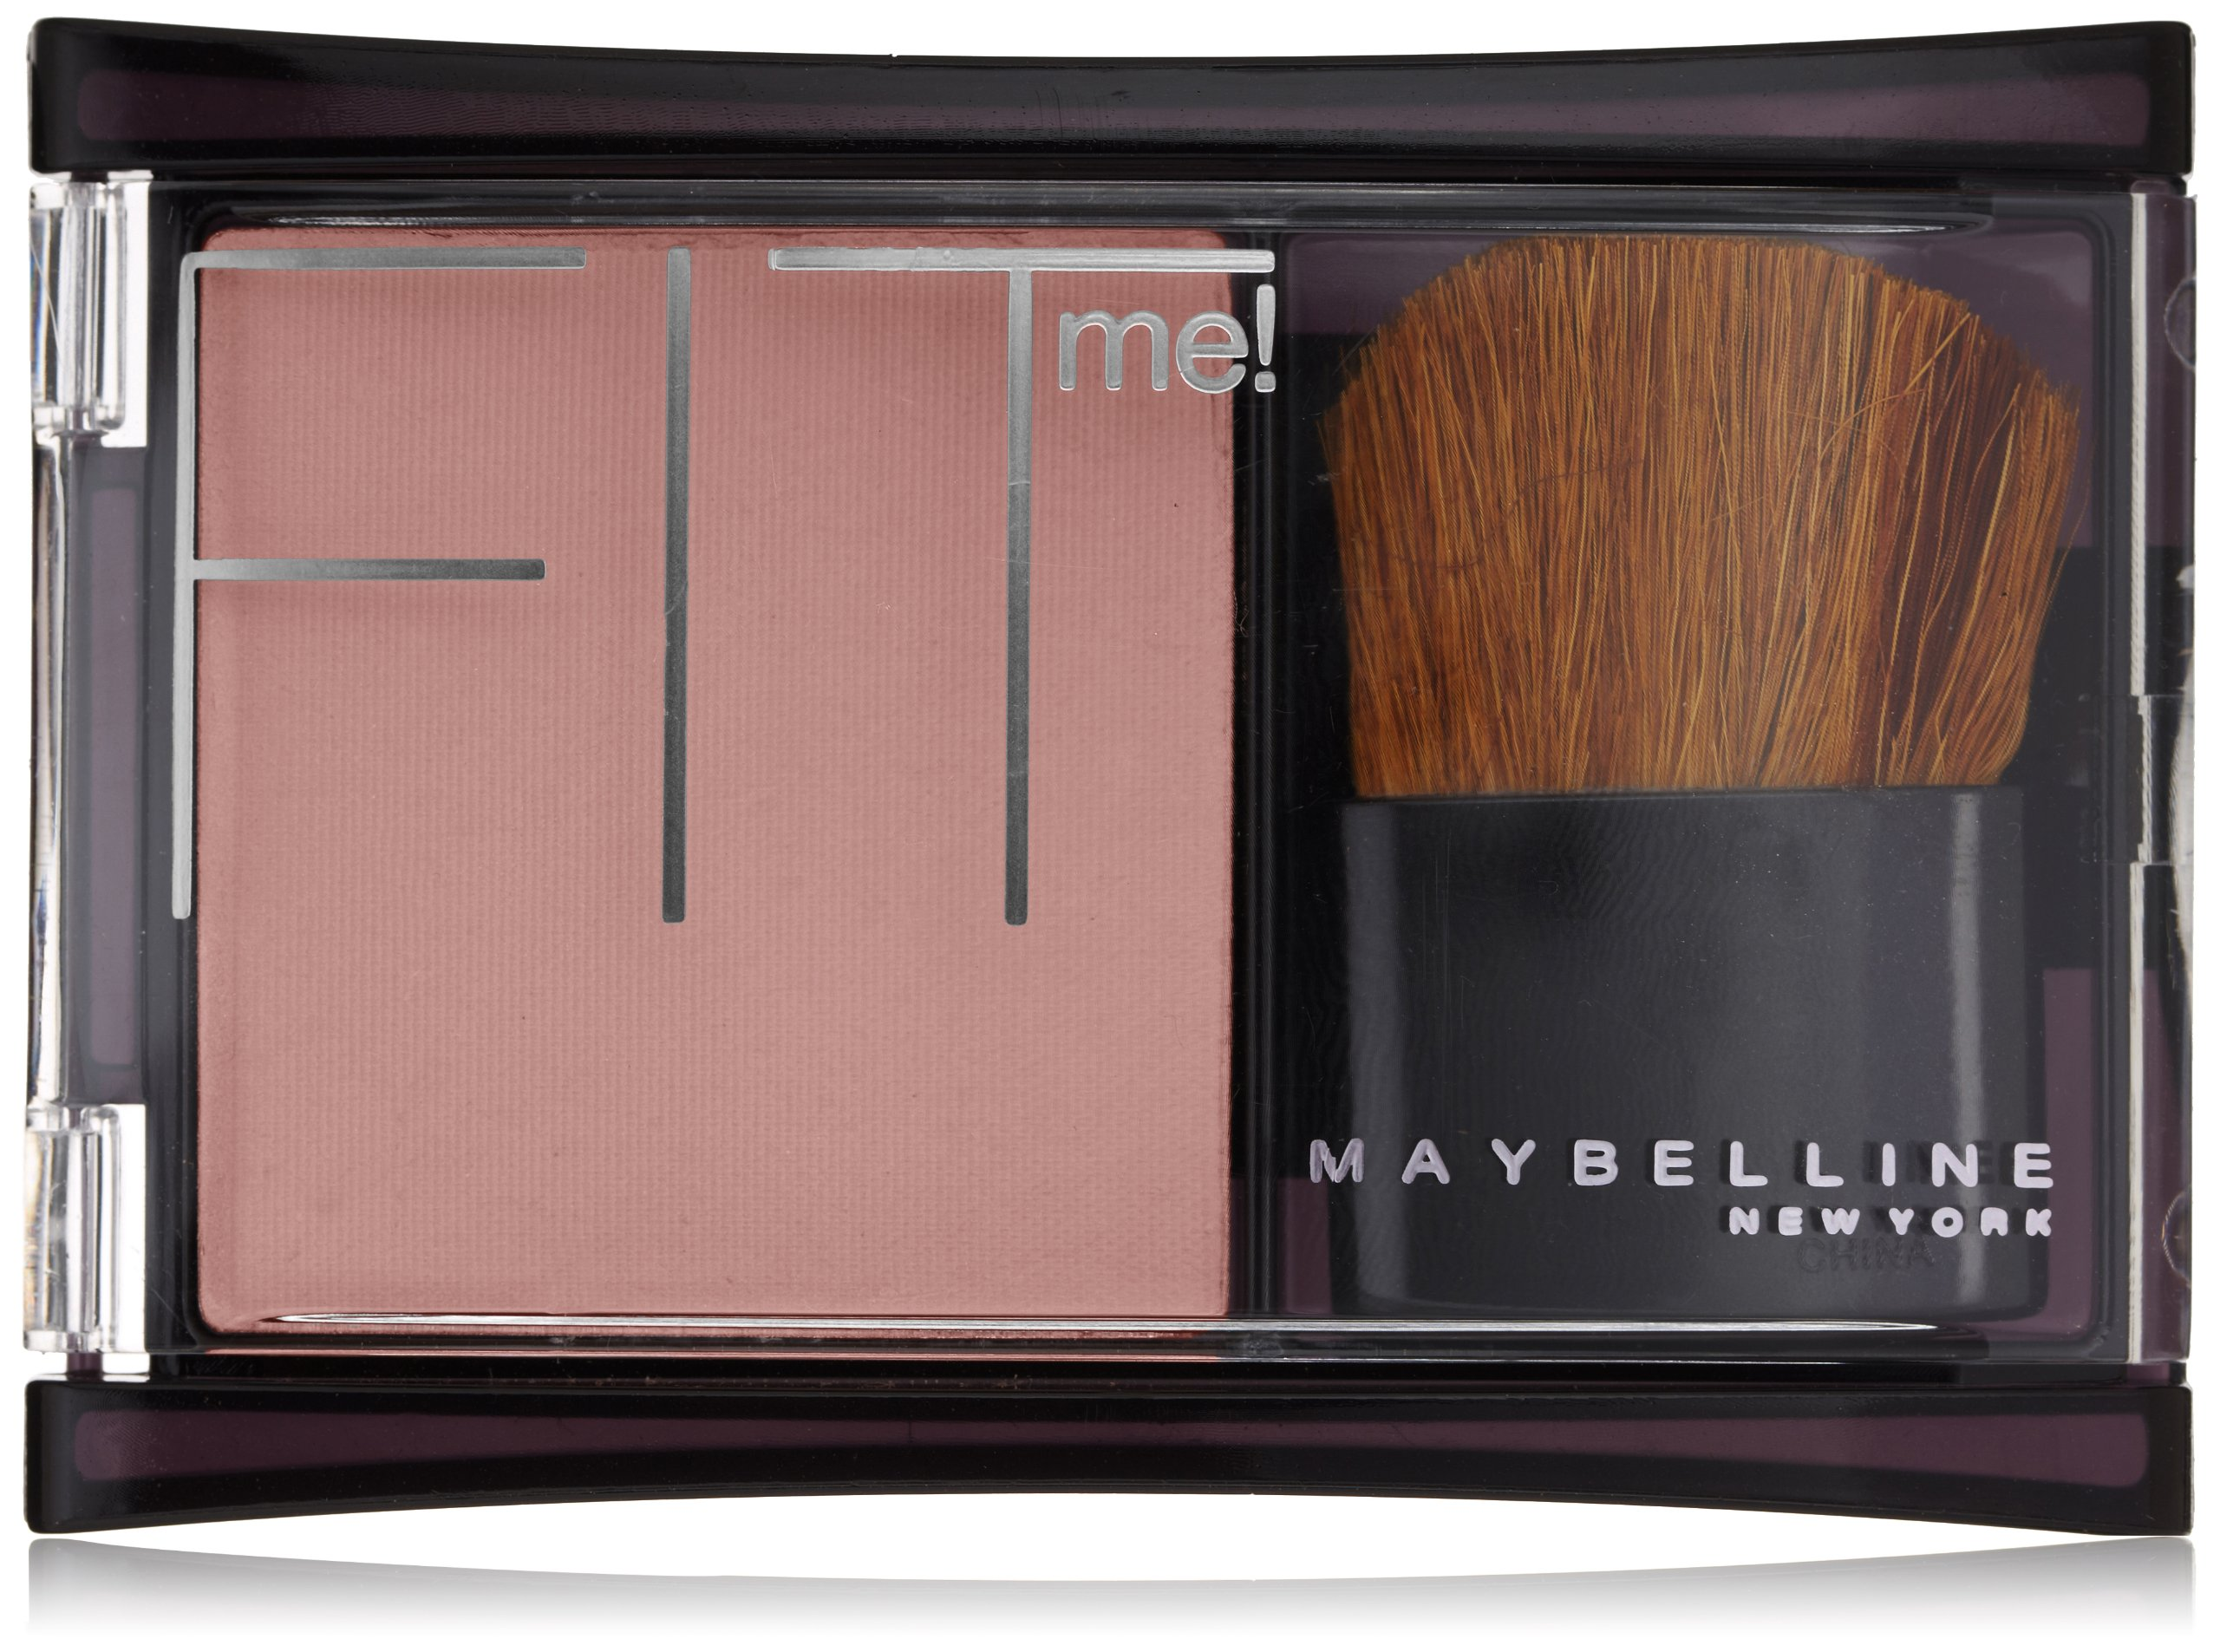 Maybelline New York Fit Me! Blush, Deep Mauve, 0.16 Ounce